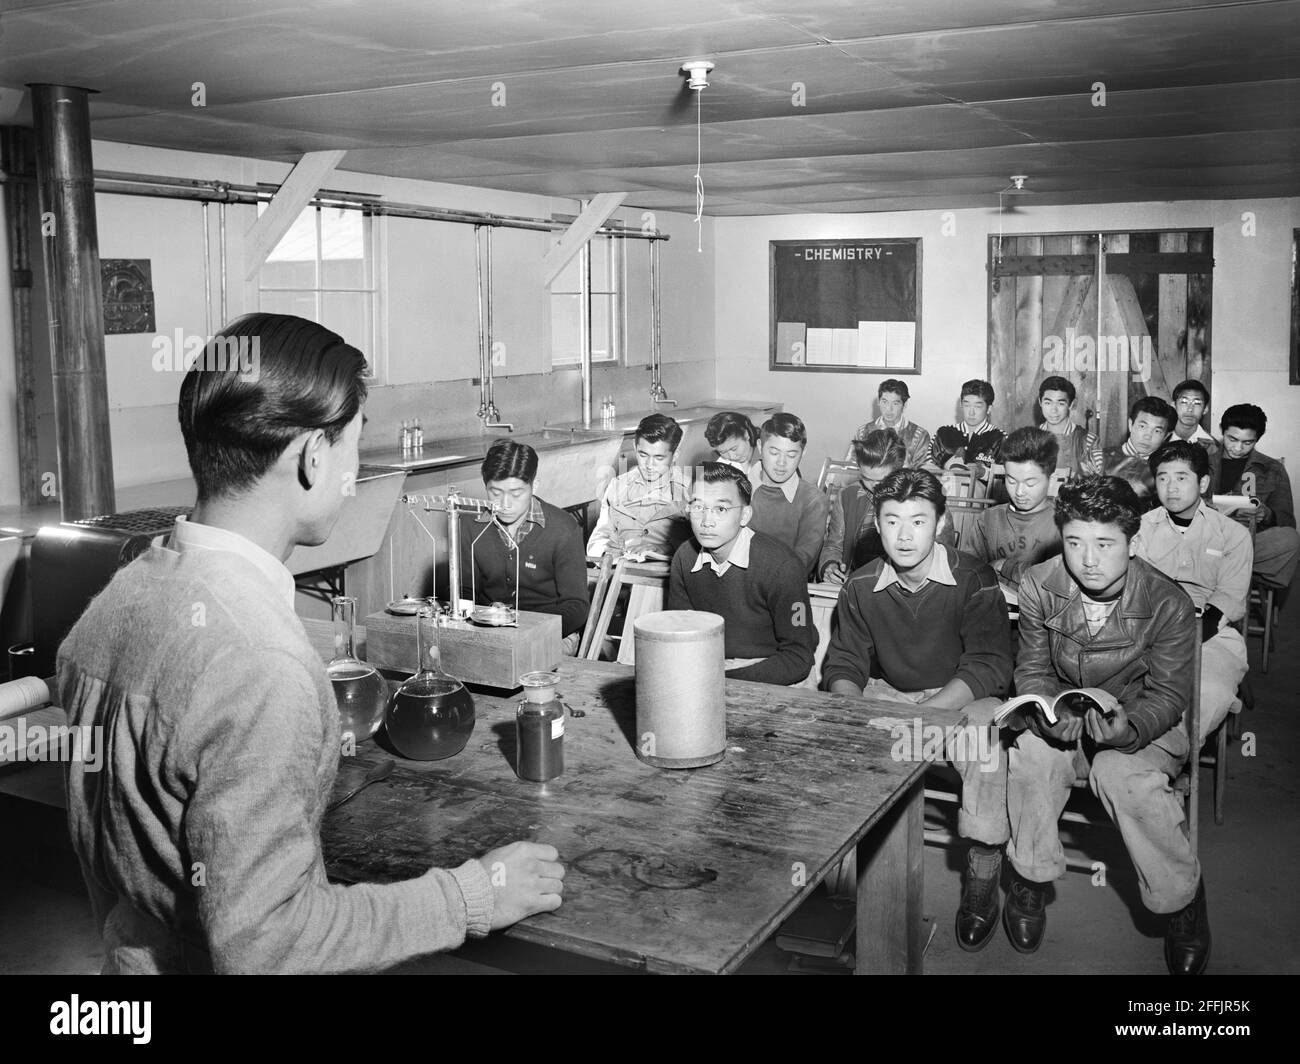 Japanese-American Students sitting in Chemistry Classroom, Manzanar Relocation Center, California, USA, Ansel Adams, Manzanar War Relocation Center Collection, 1943 Stock Photo